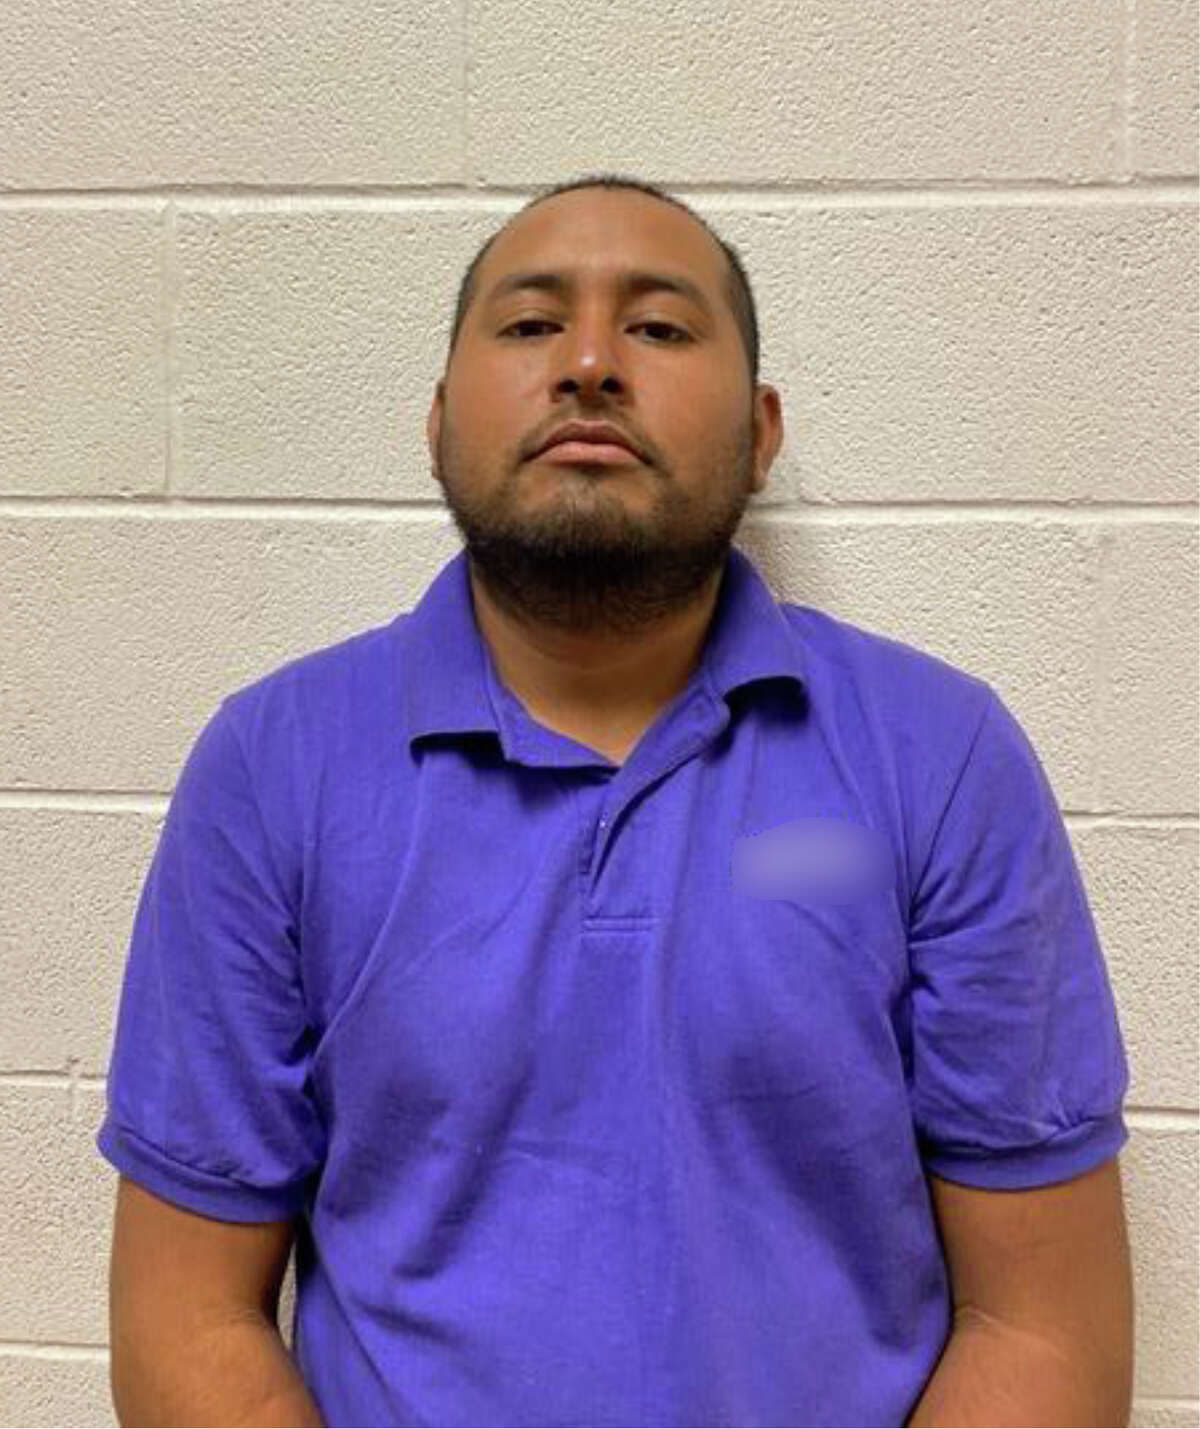 Salas-Ruiz was charged with Illegal Entry into the United States and will remain in U.S. Border Patrol custody pending his extradition to North Carolina.